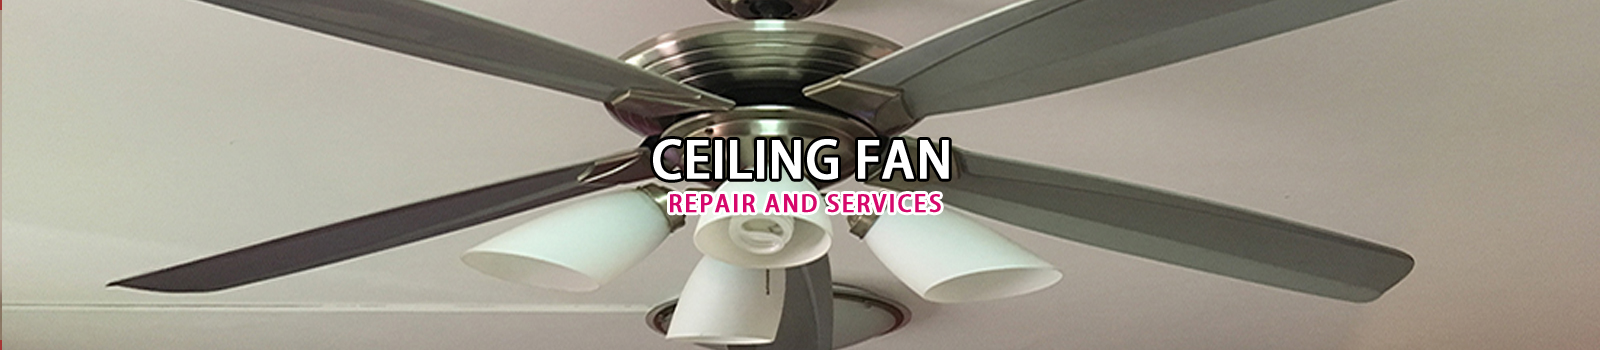 AVV Electrical - Ceiling fan repair and service